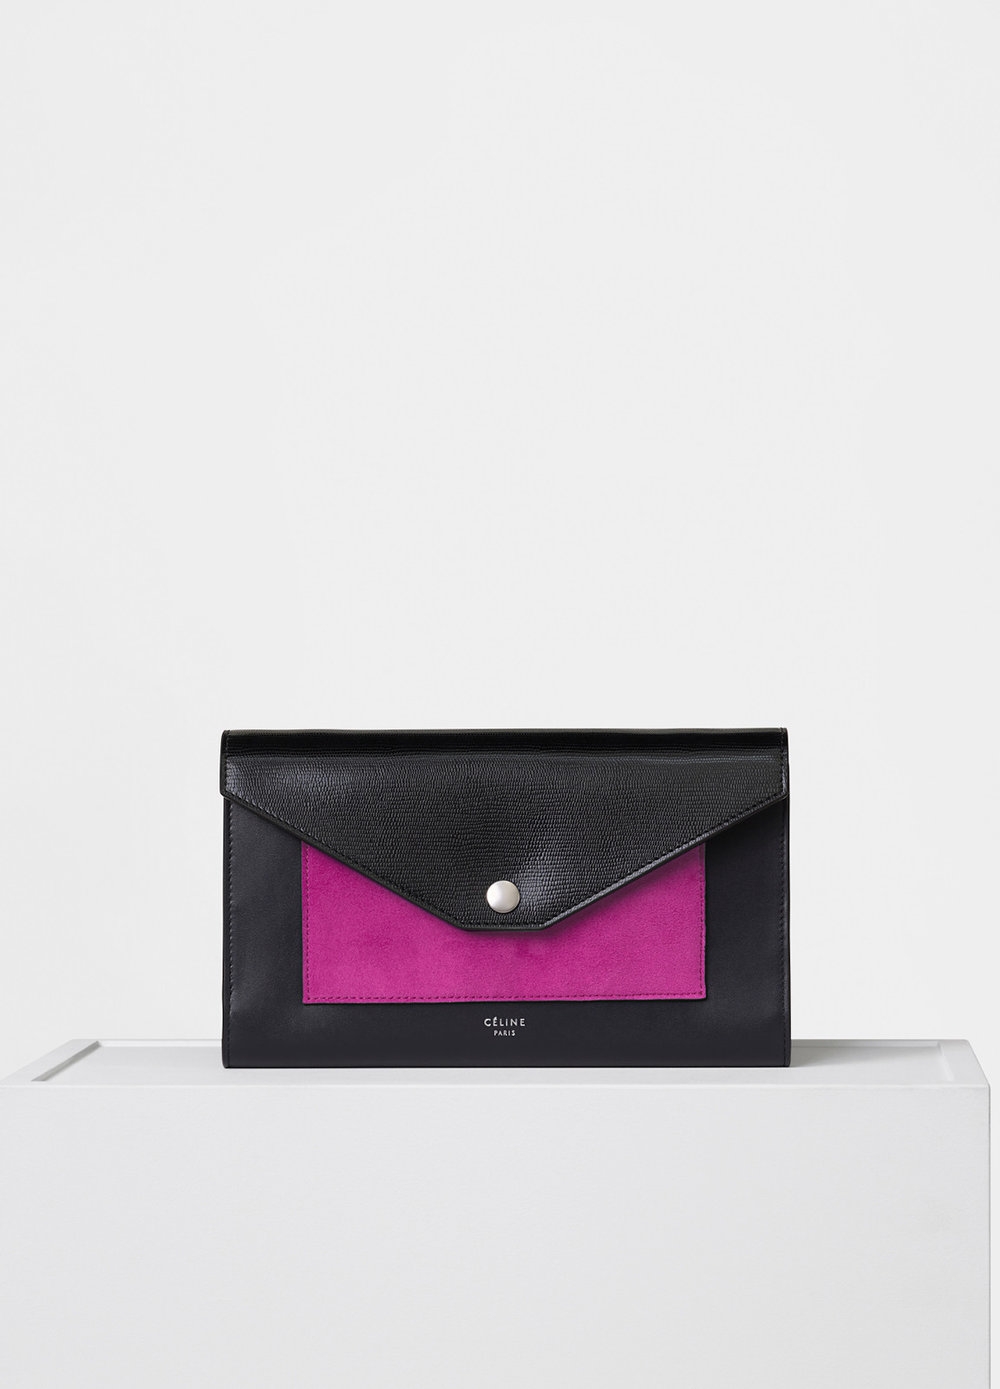 Celine Flap Envelope Purse